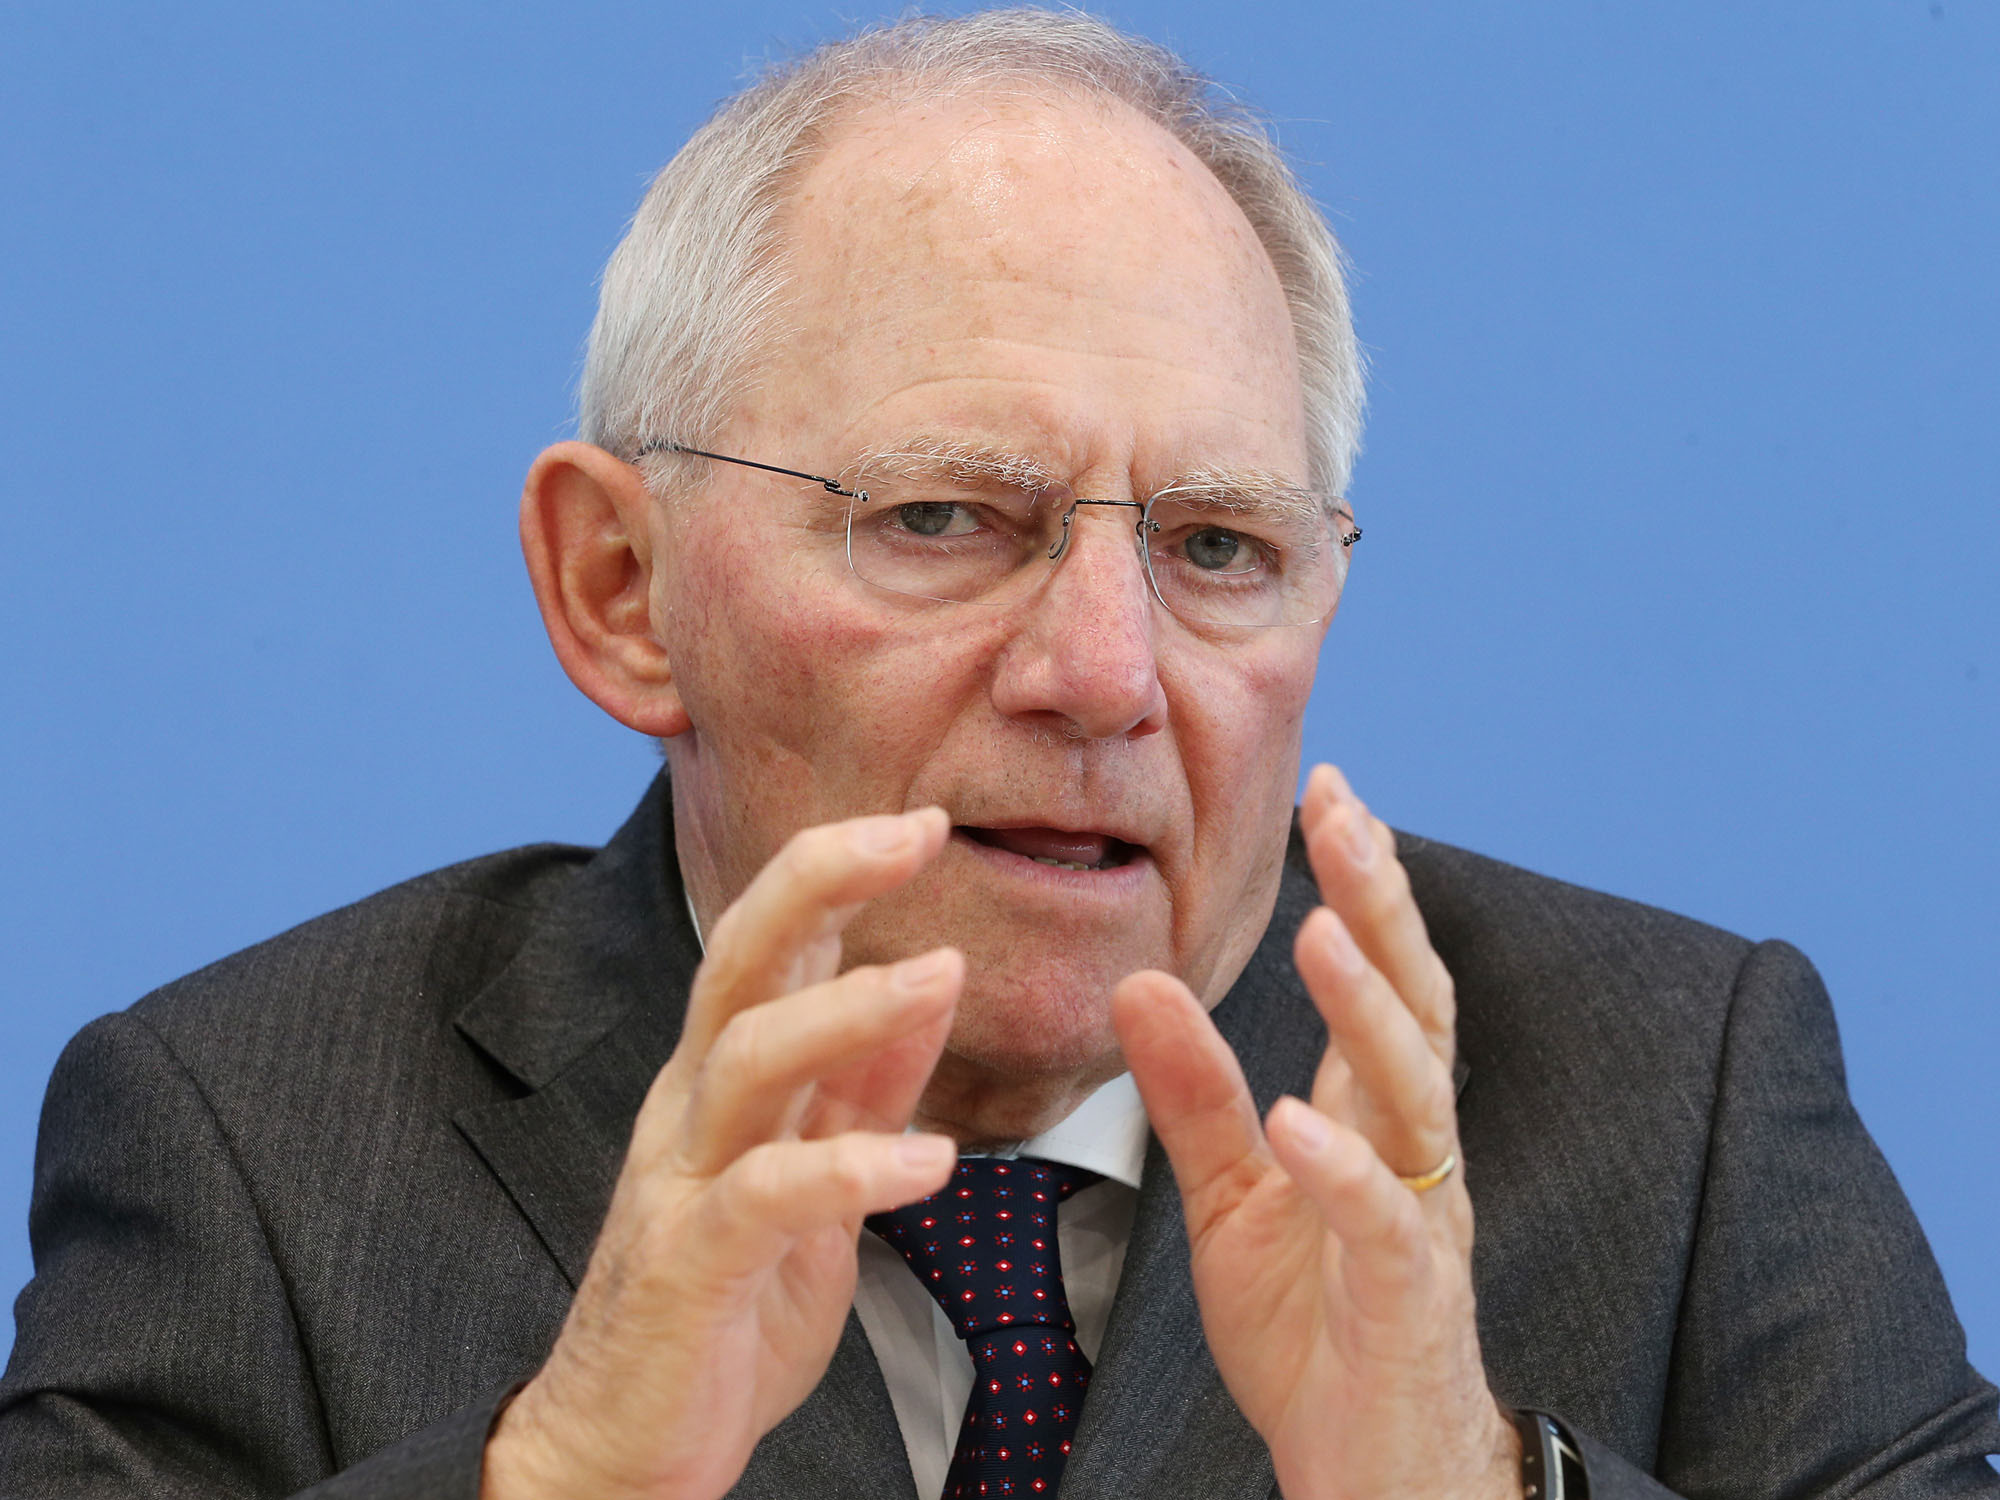 Wolfgang Schäuble / Foto: dpa picture-alliance